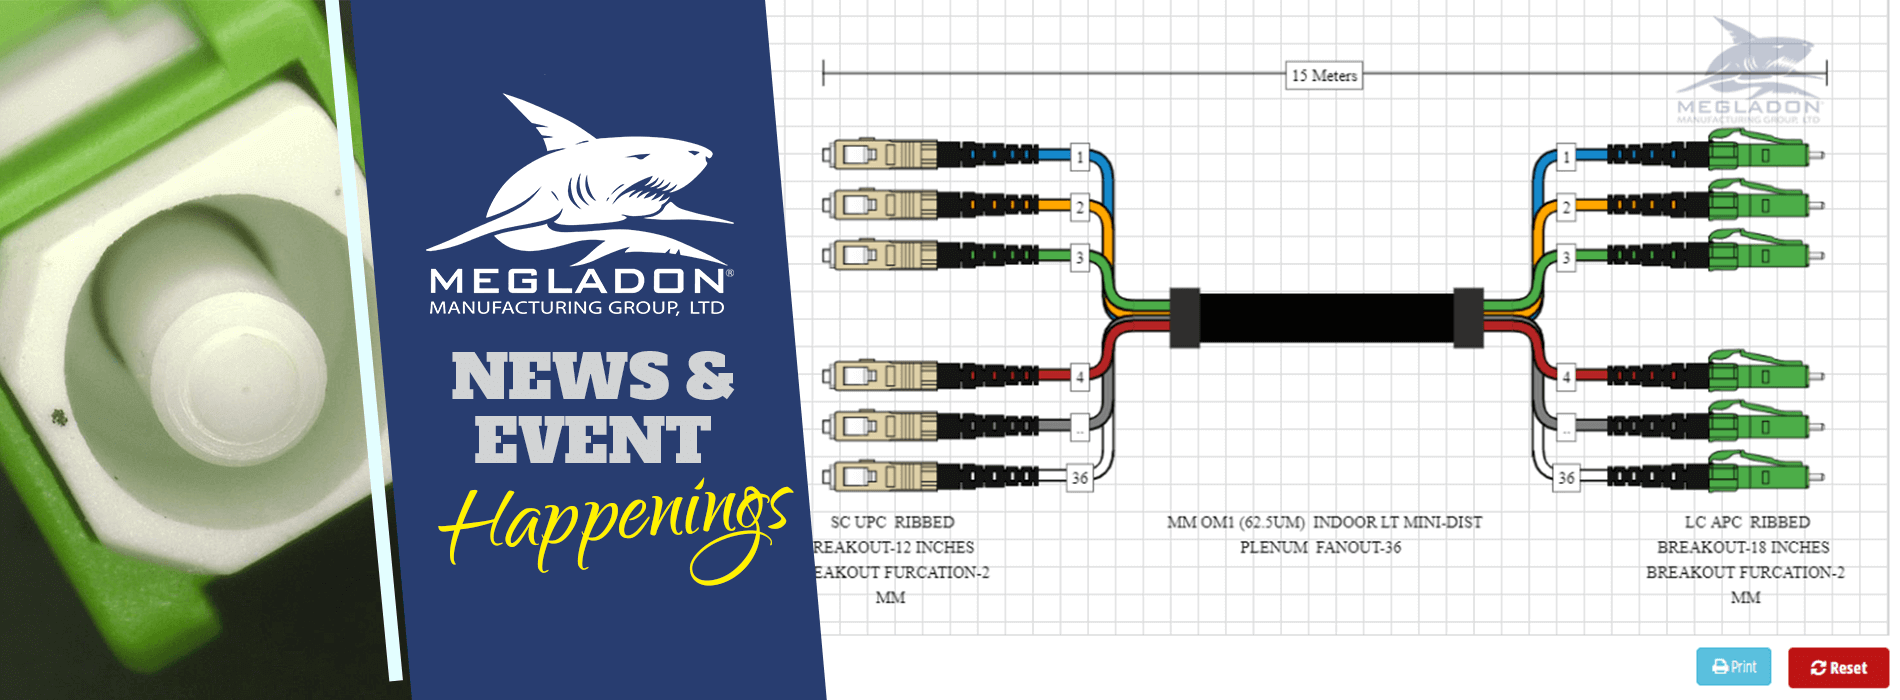 News & Events - Custom Cable Configuration Tool